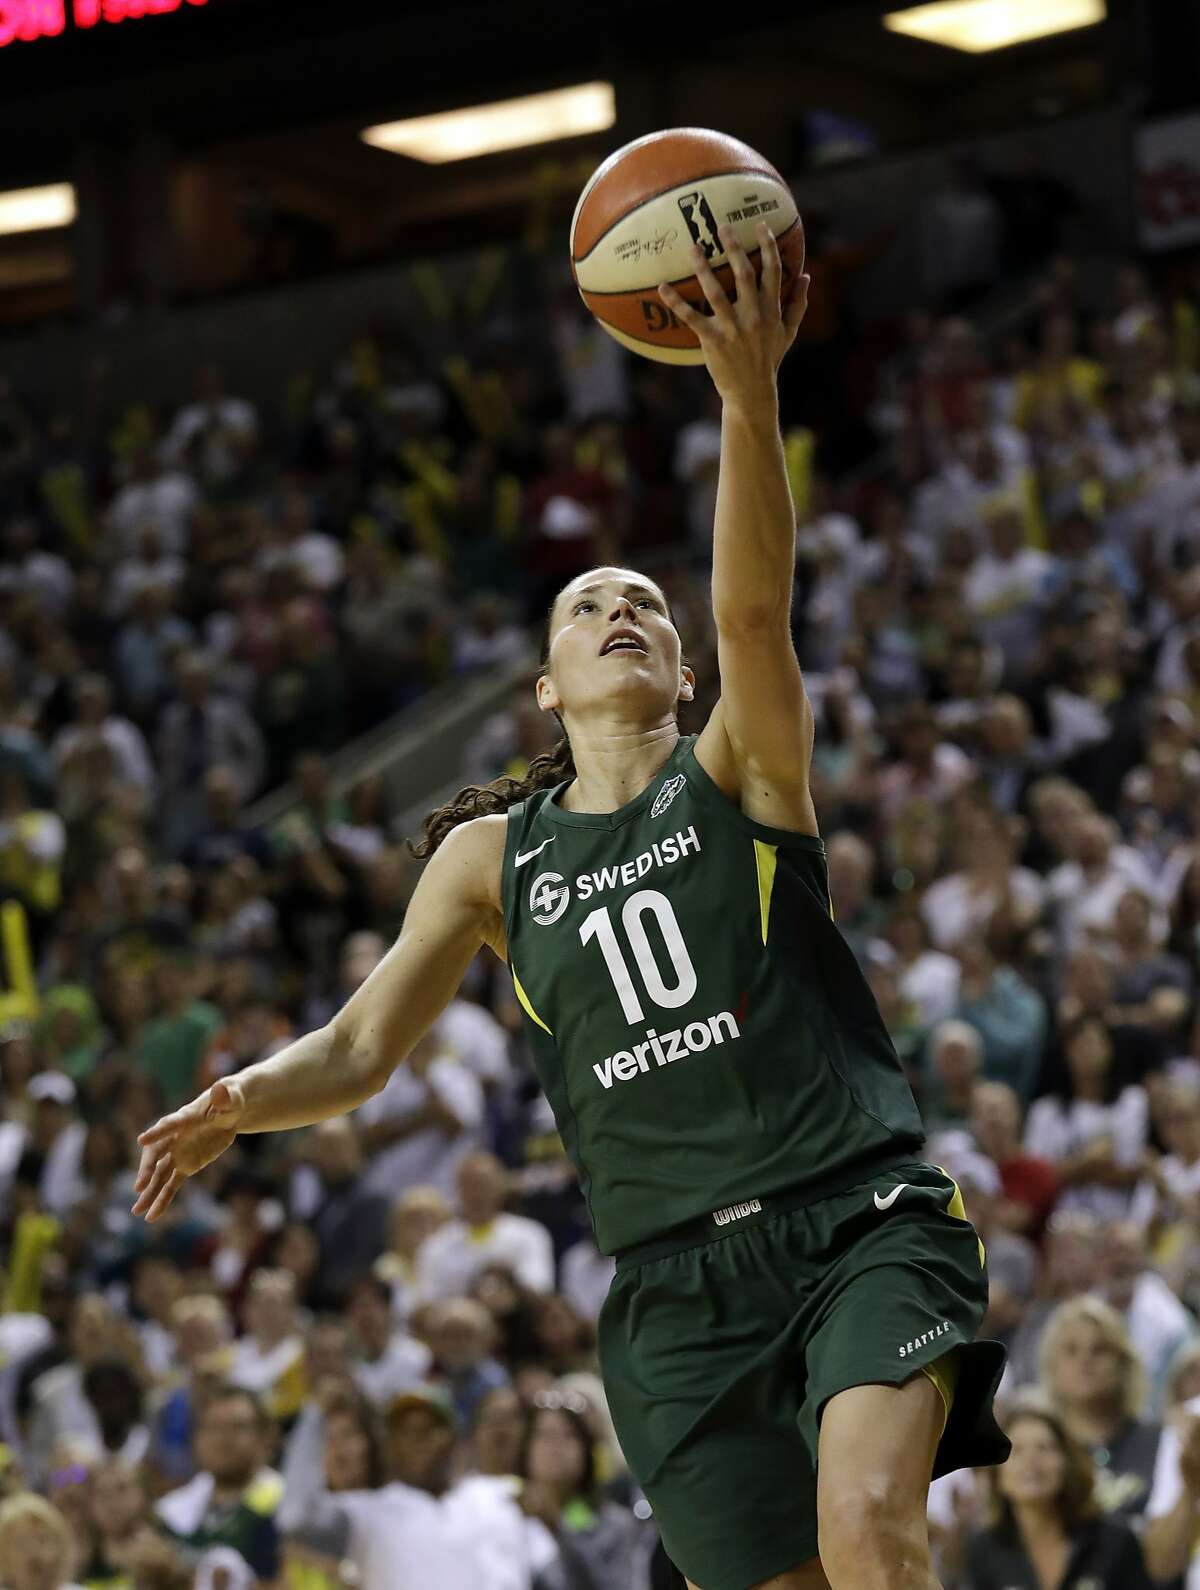 Seattle Storm's Sue Bird drives the lane to score late in overtime in a WNBA basketball playoff semifinal against the Phoenix Mercury, Tuesday, Aug. 28, 2018, in Seattle. The Storm won 91-87 in overtime. (AP Photo/Elaine Thompson)